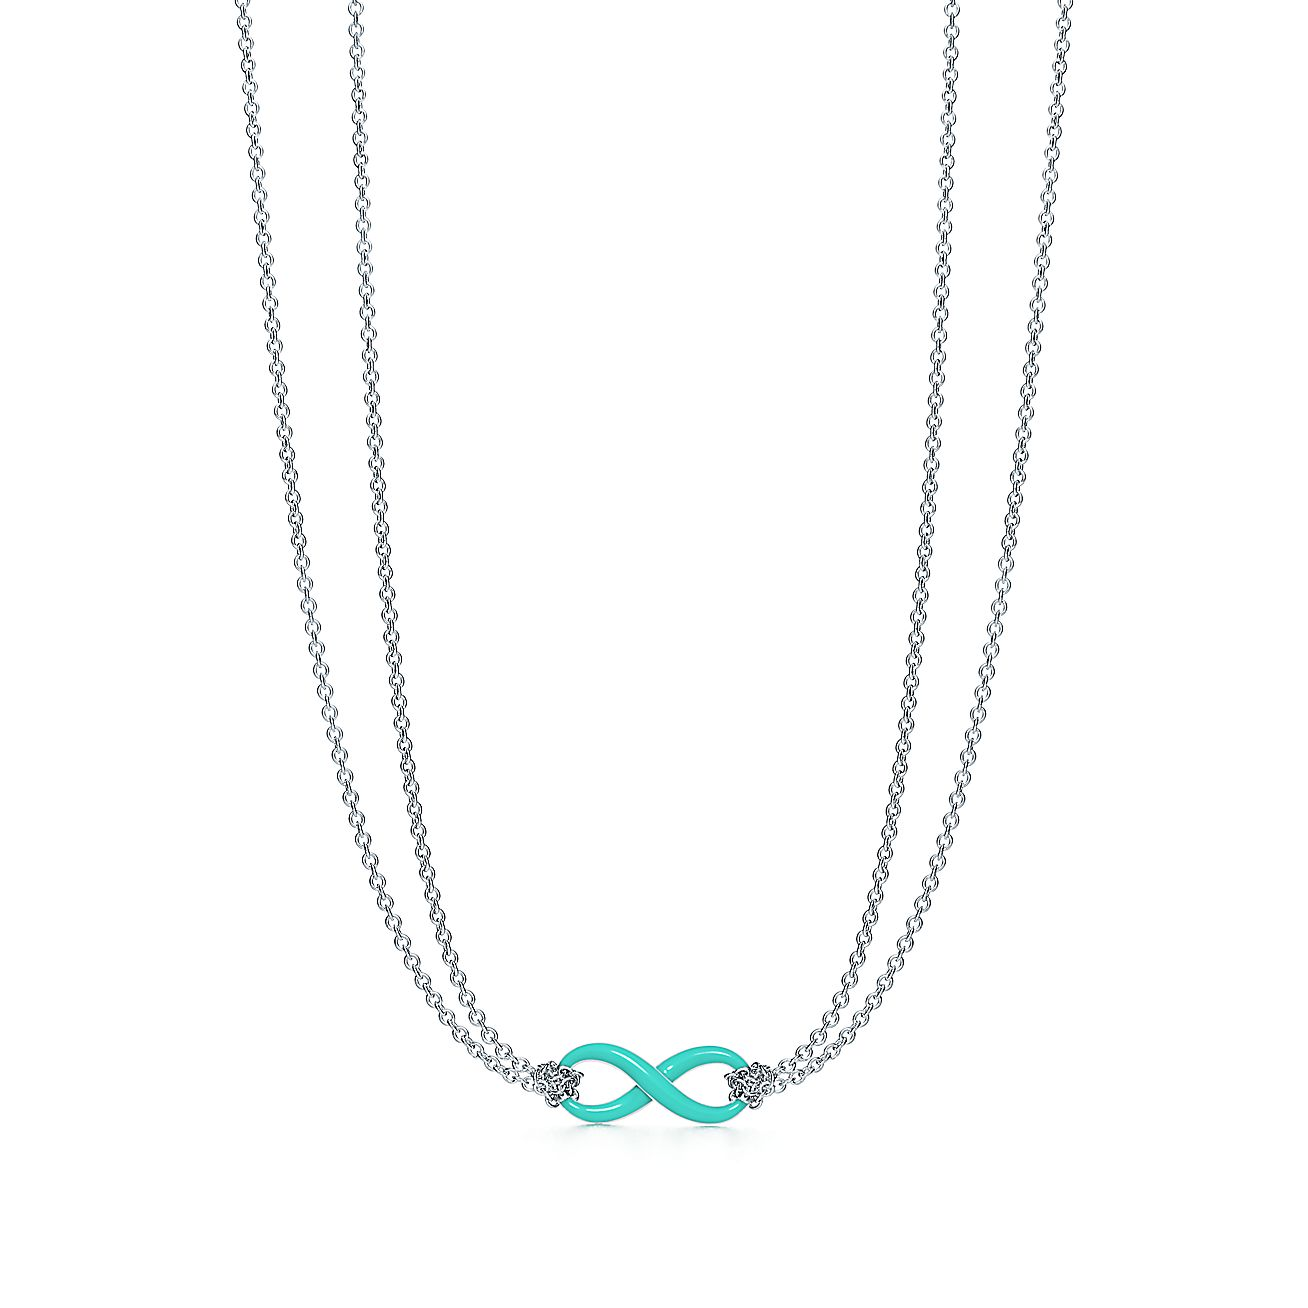 sign james infinity necklace products image larger love of next zoom view infinite nk avery